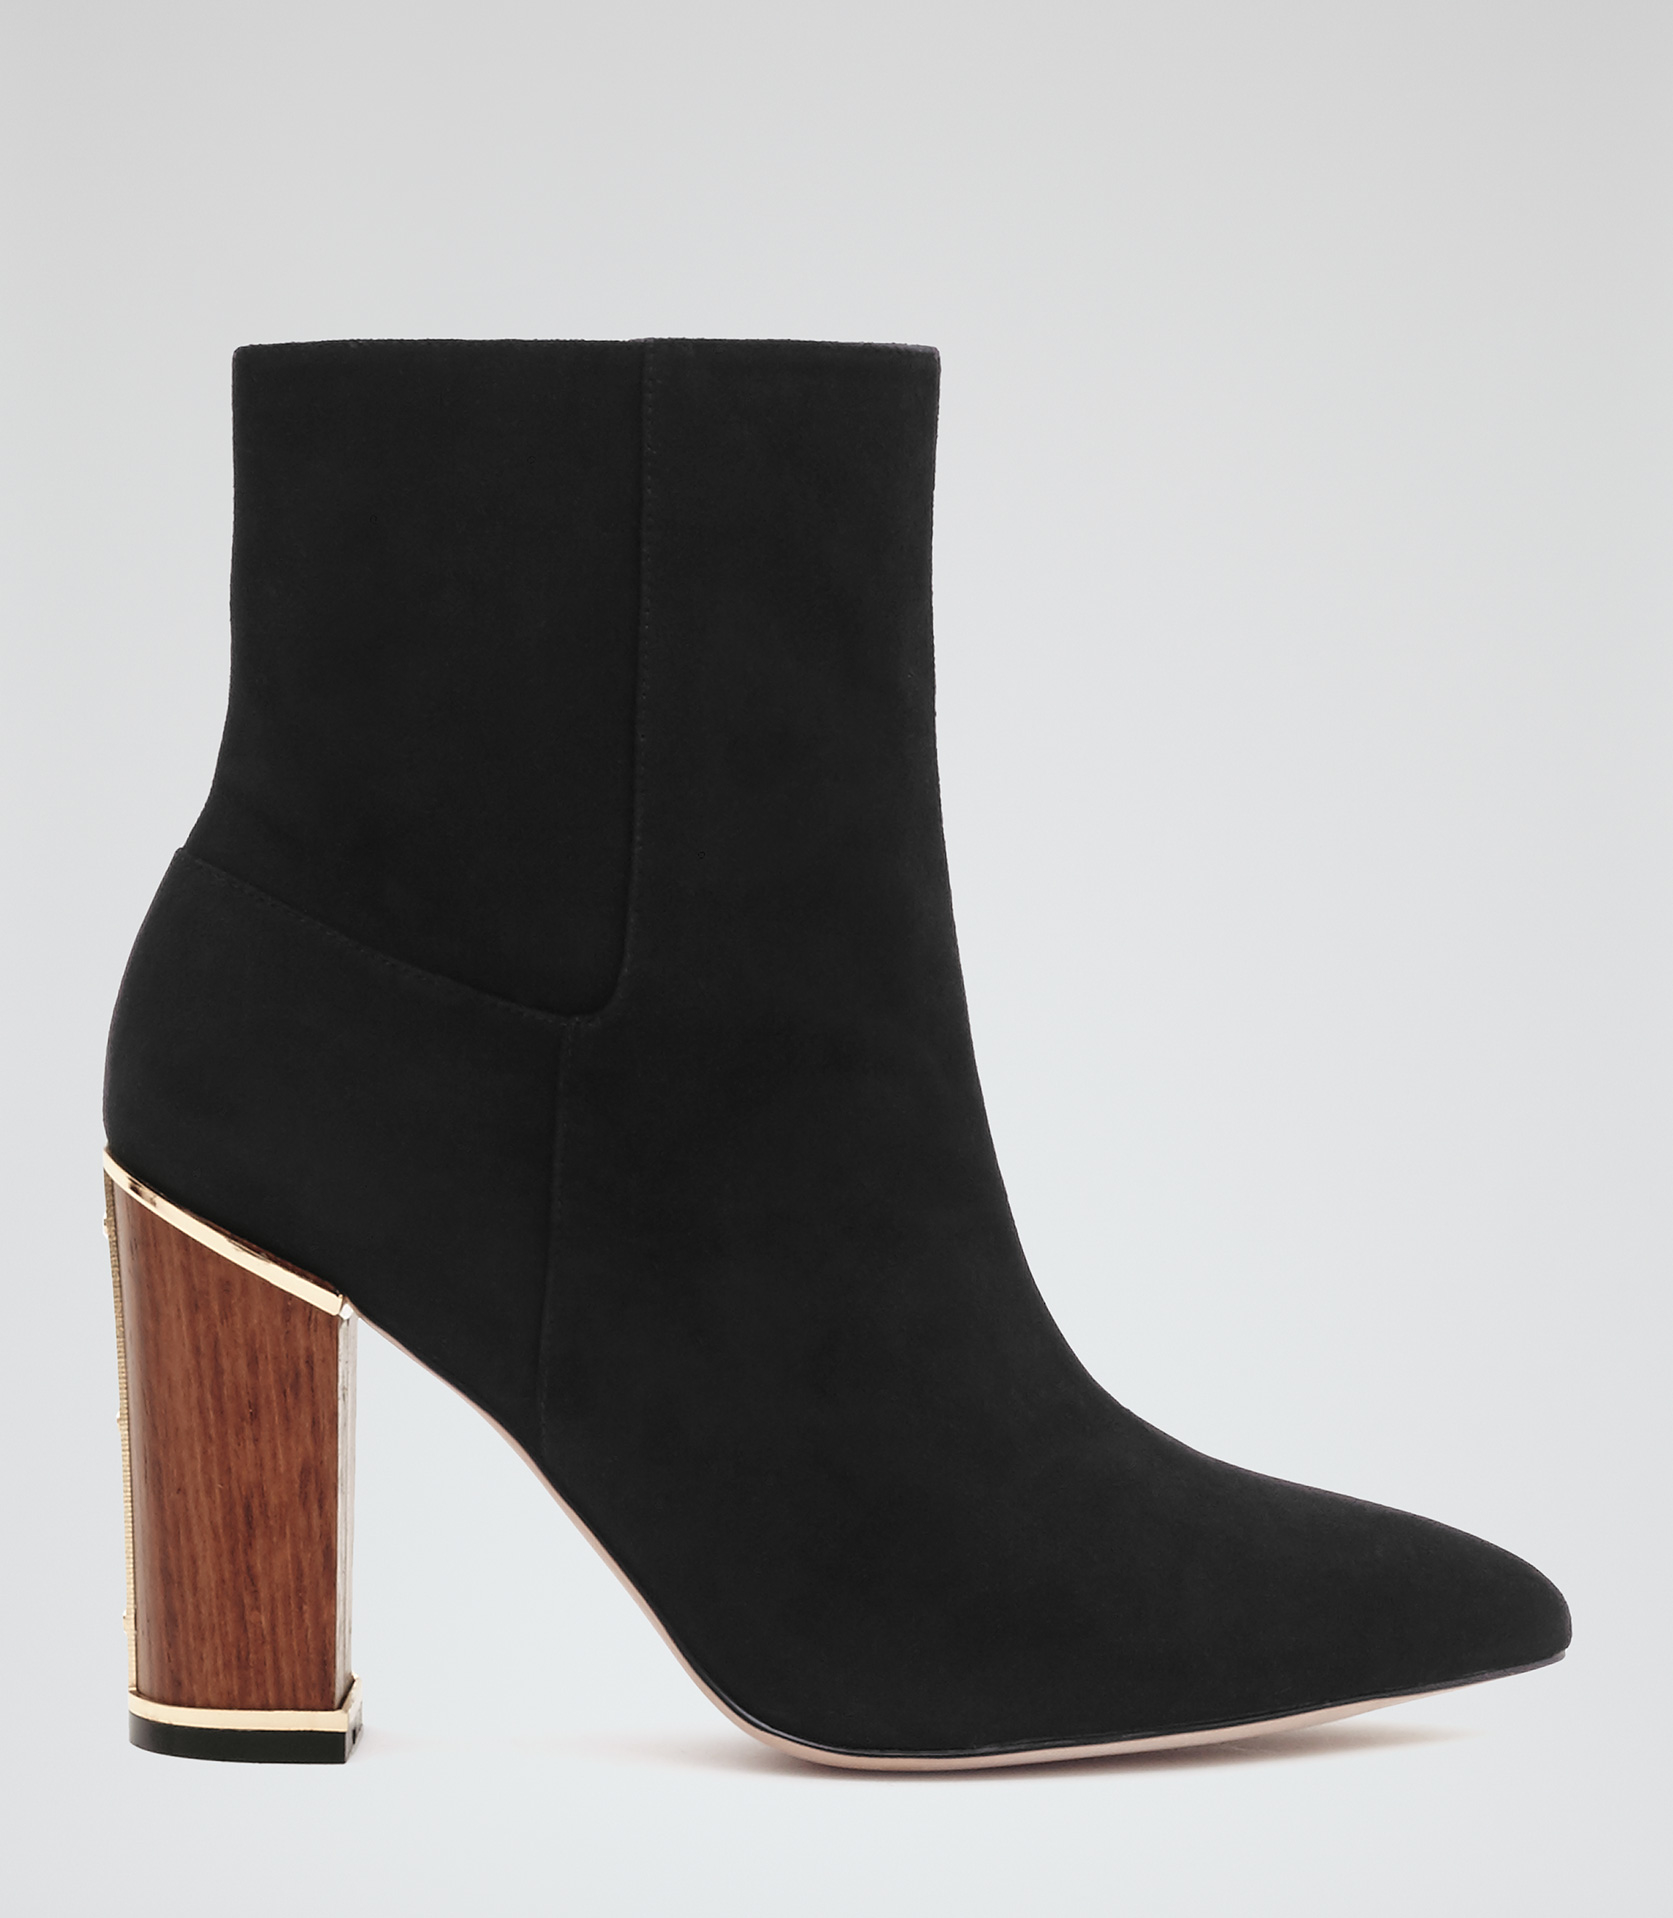 reiss marley wooden heel ankle boots in black lyst